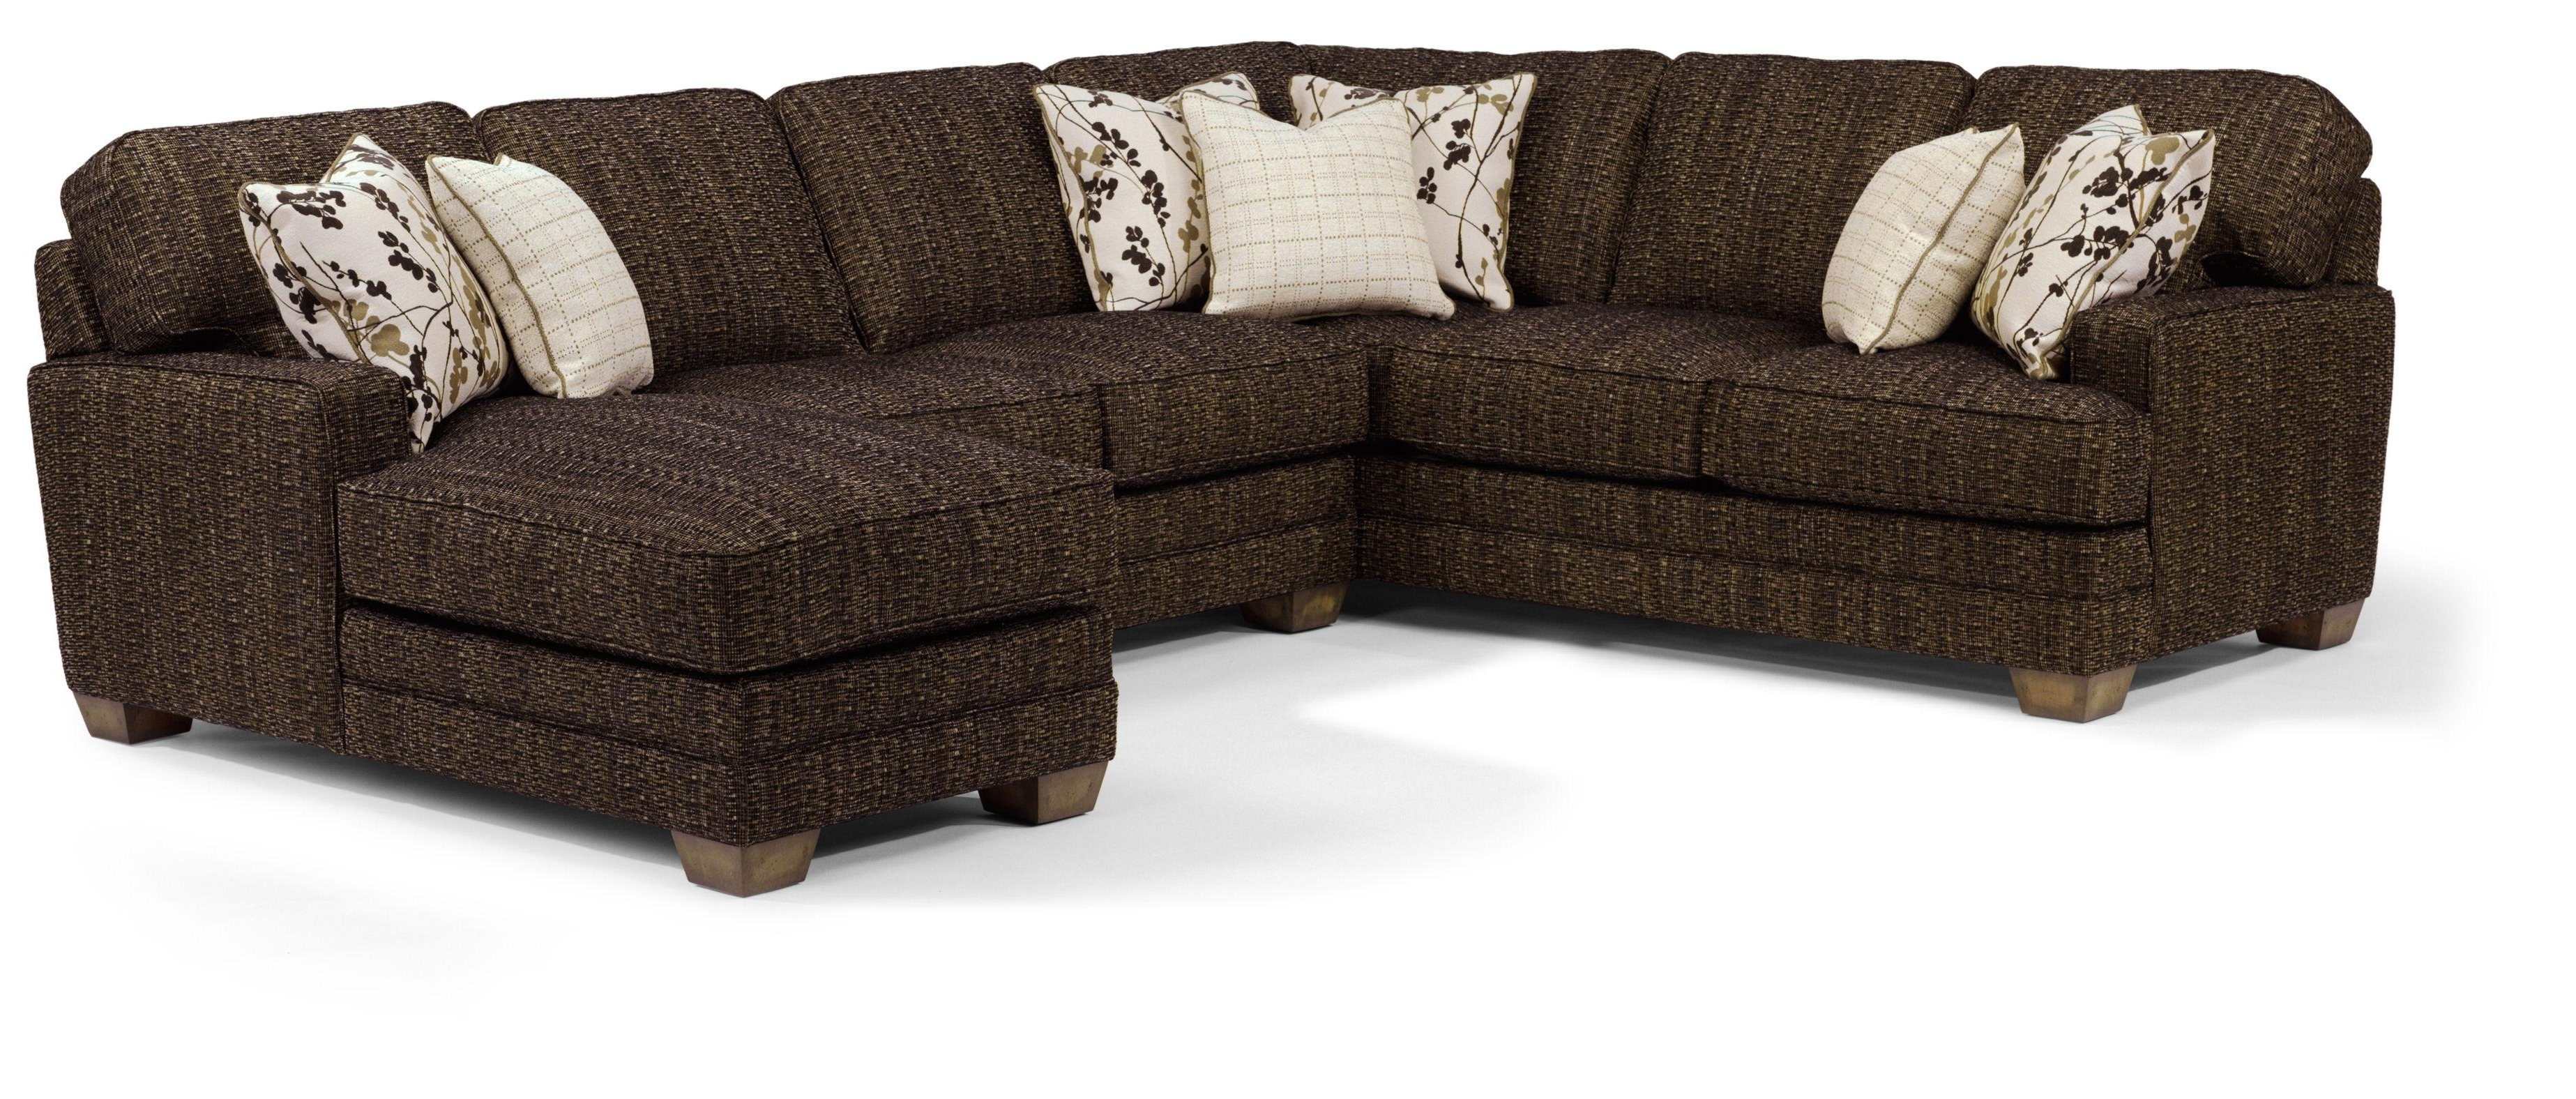 Flexsteel That's My Style <B>Customizable</b> 3 Piece Sectional In Recent Duluth Mn Sectional Sofas (View 9 of 15)